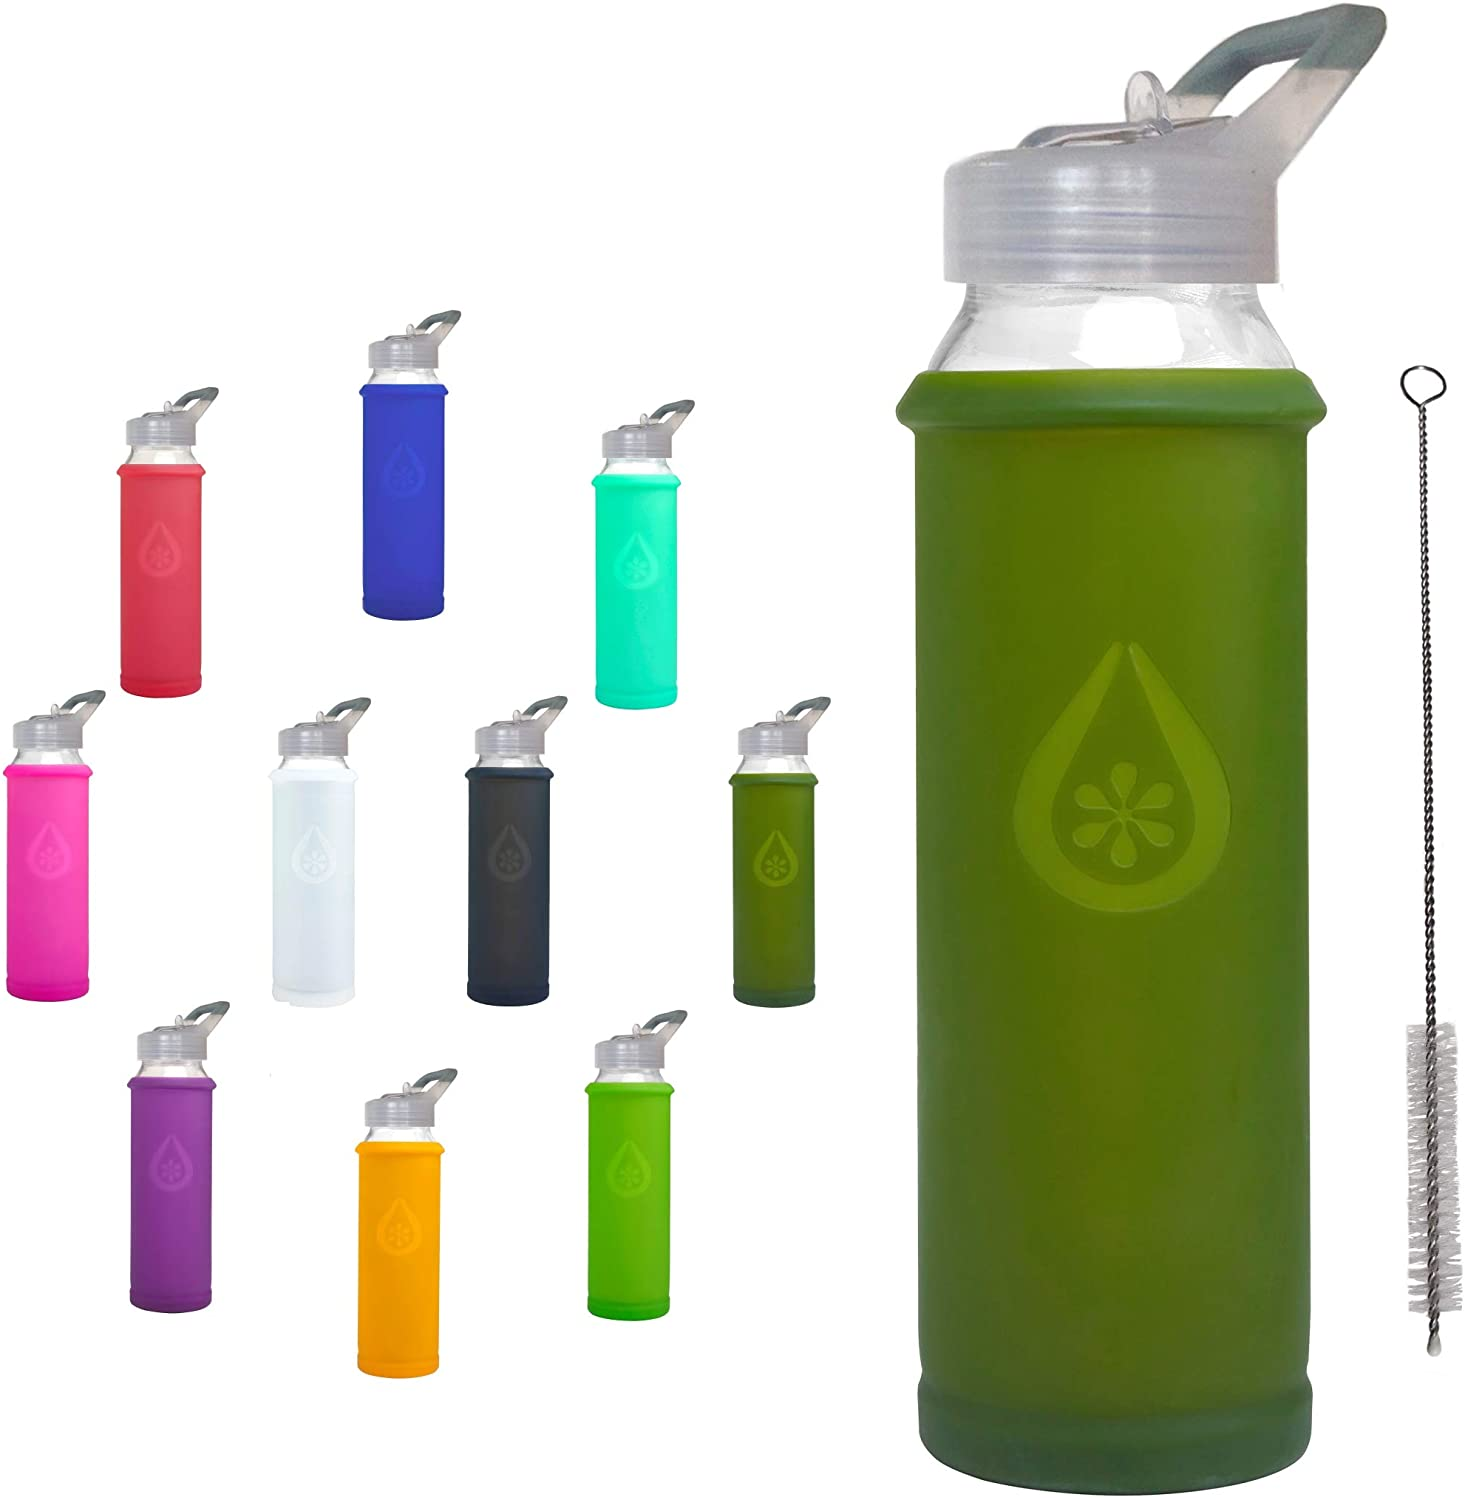 Eveau Glass Water Bottle with Straw Lid, Bumperguard Silicone Sleeve, Wide Mouth Opening, 21 Ounce/630 ml